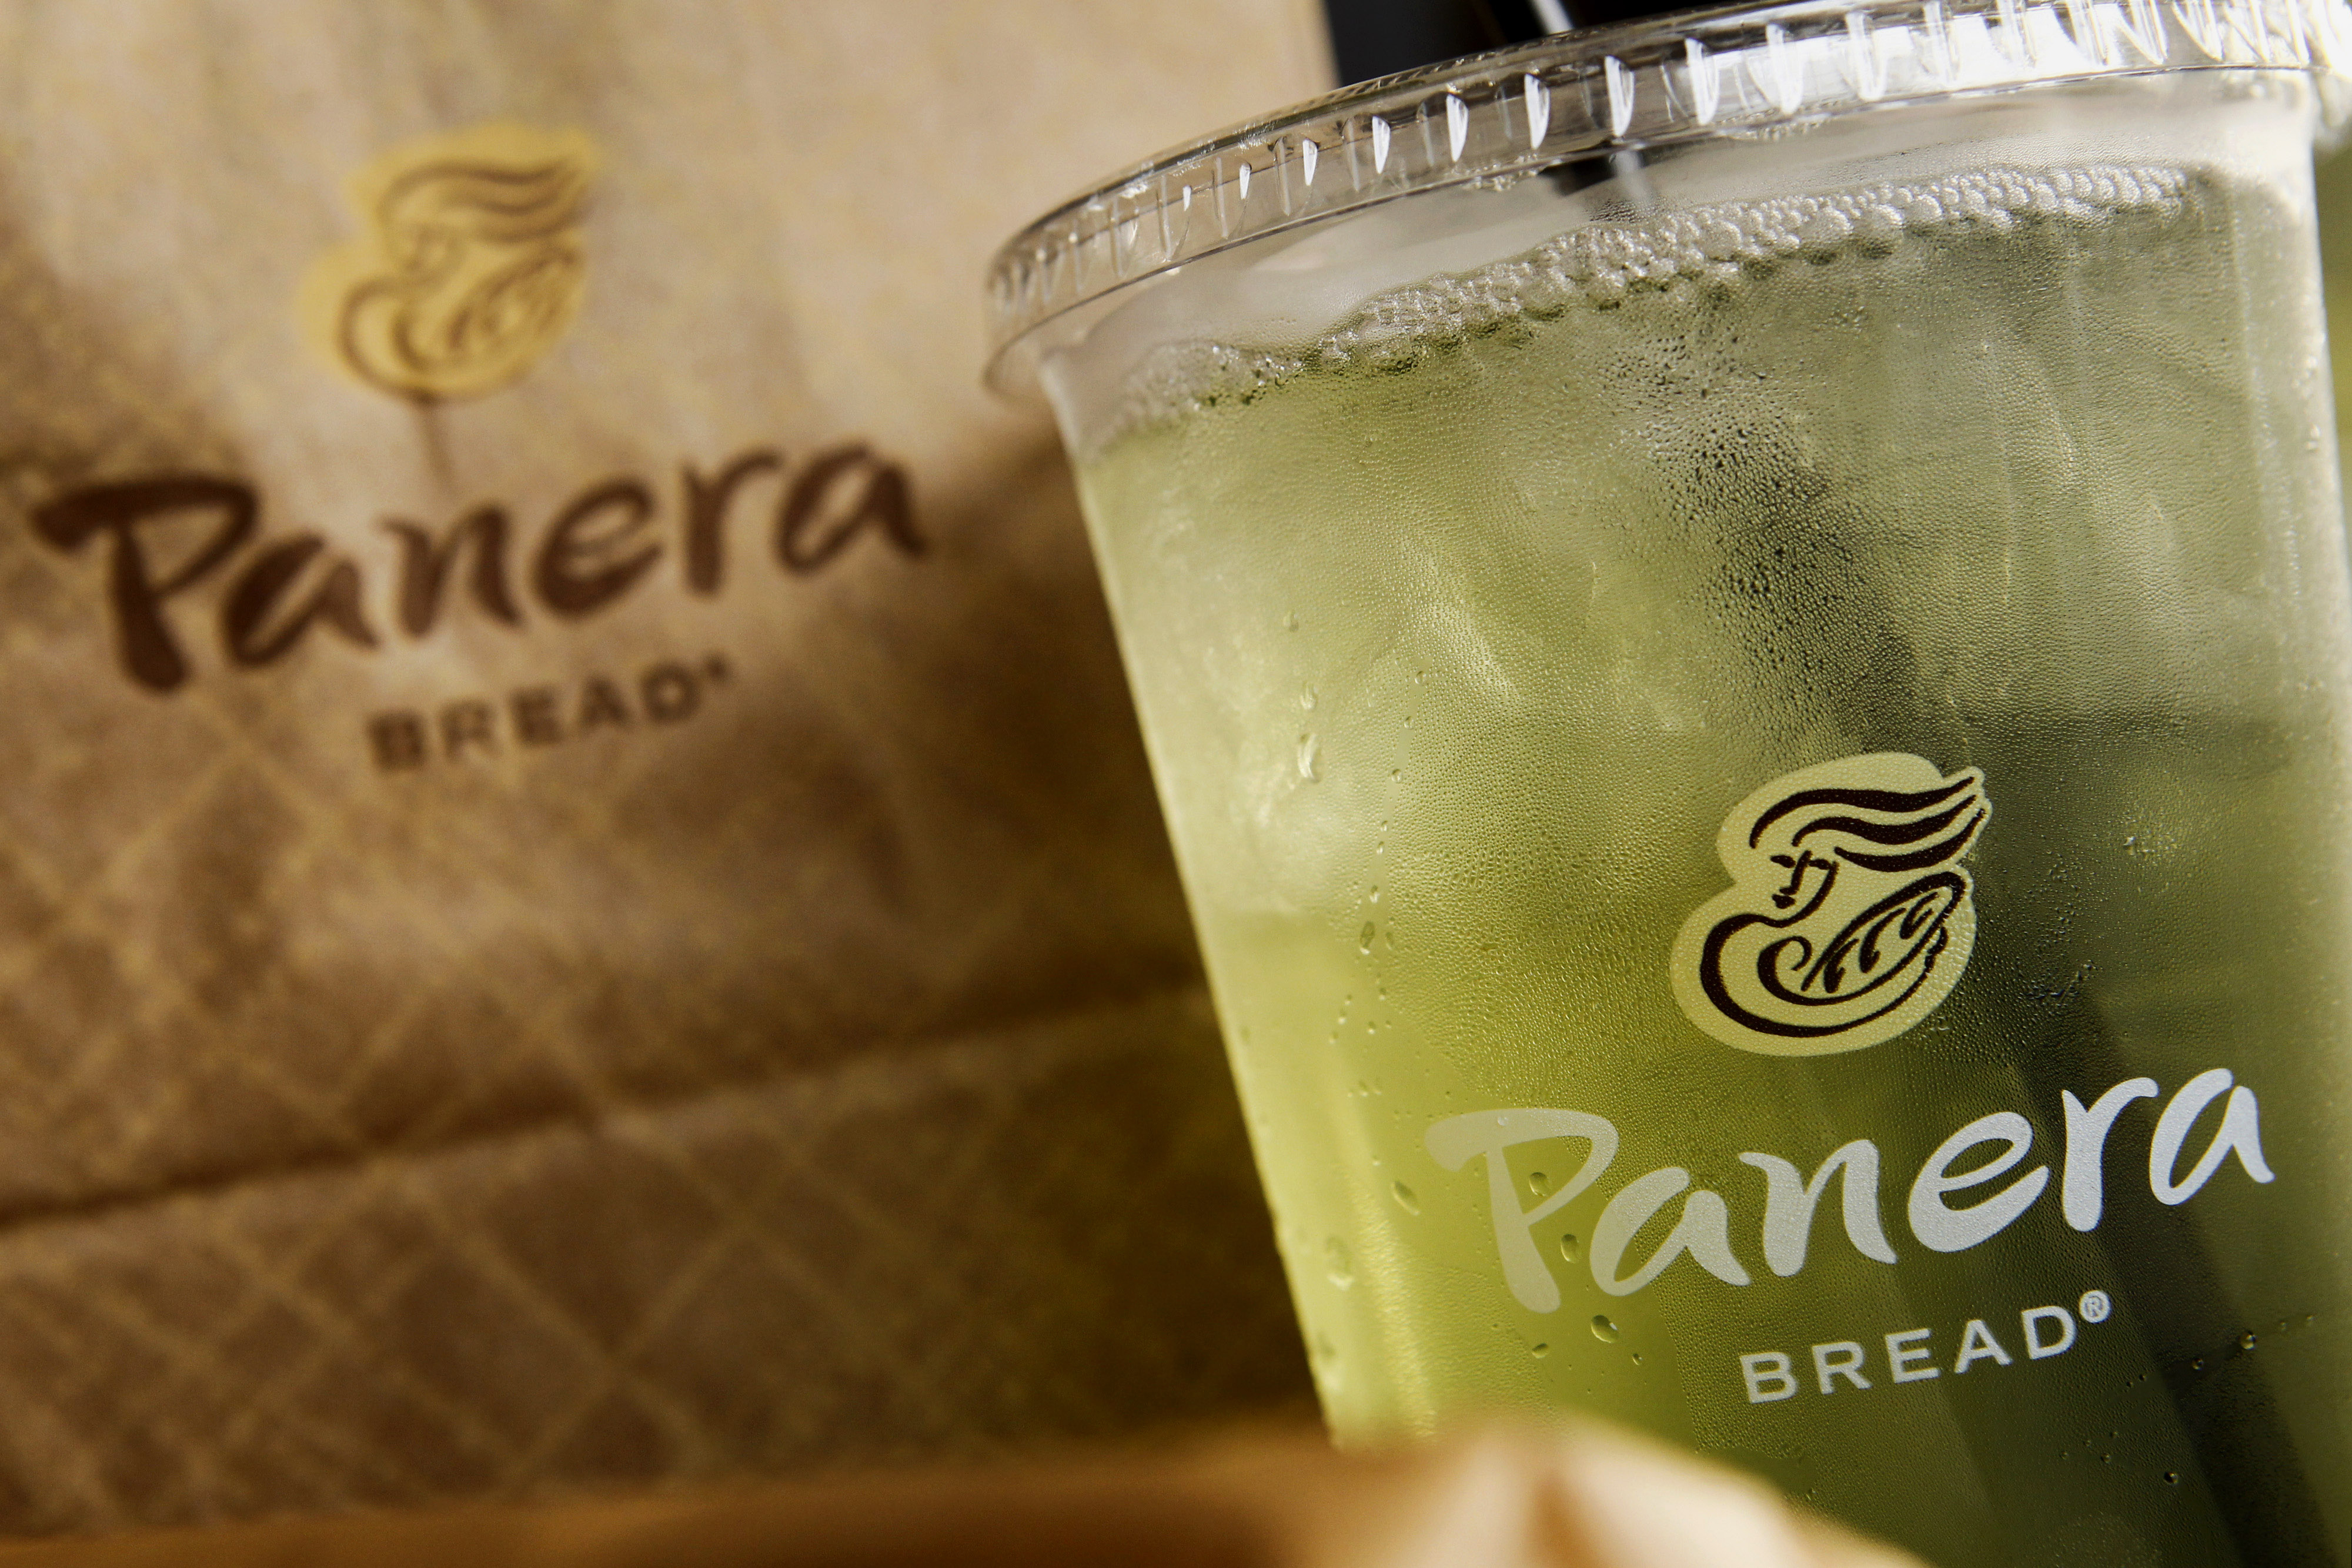 The Panera Bread Co. logo is seen on a cup of iced tea and a bag arranged for a photograph outside of a restaurant in Torrance, California, on Oct. 21, 2013.